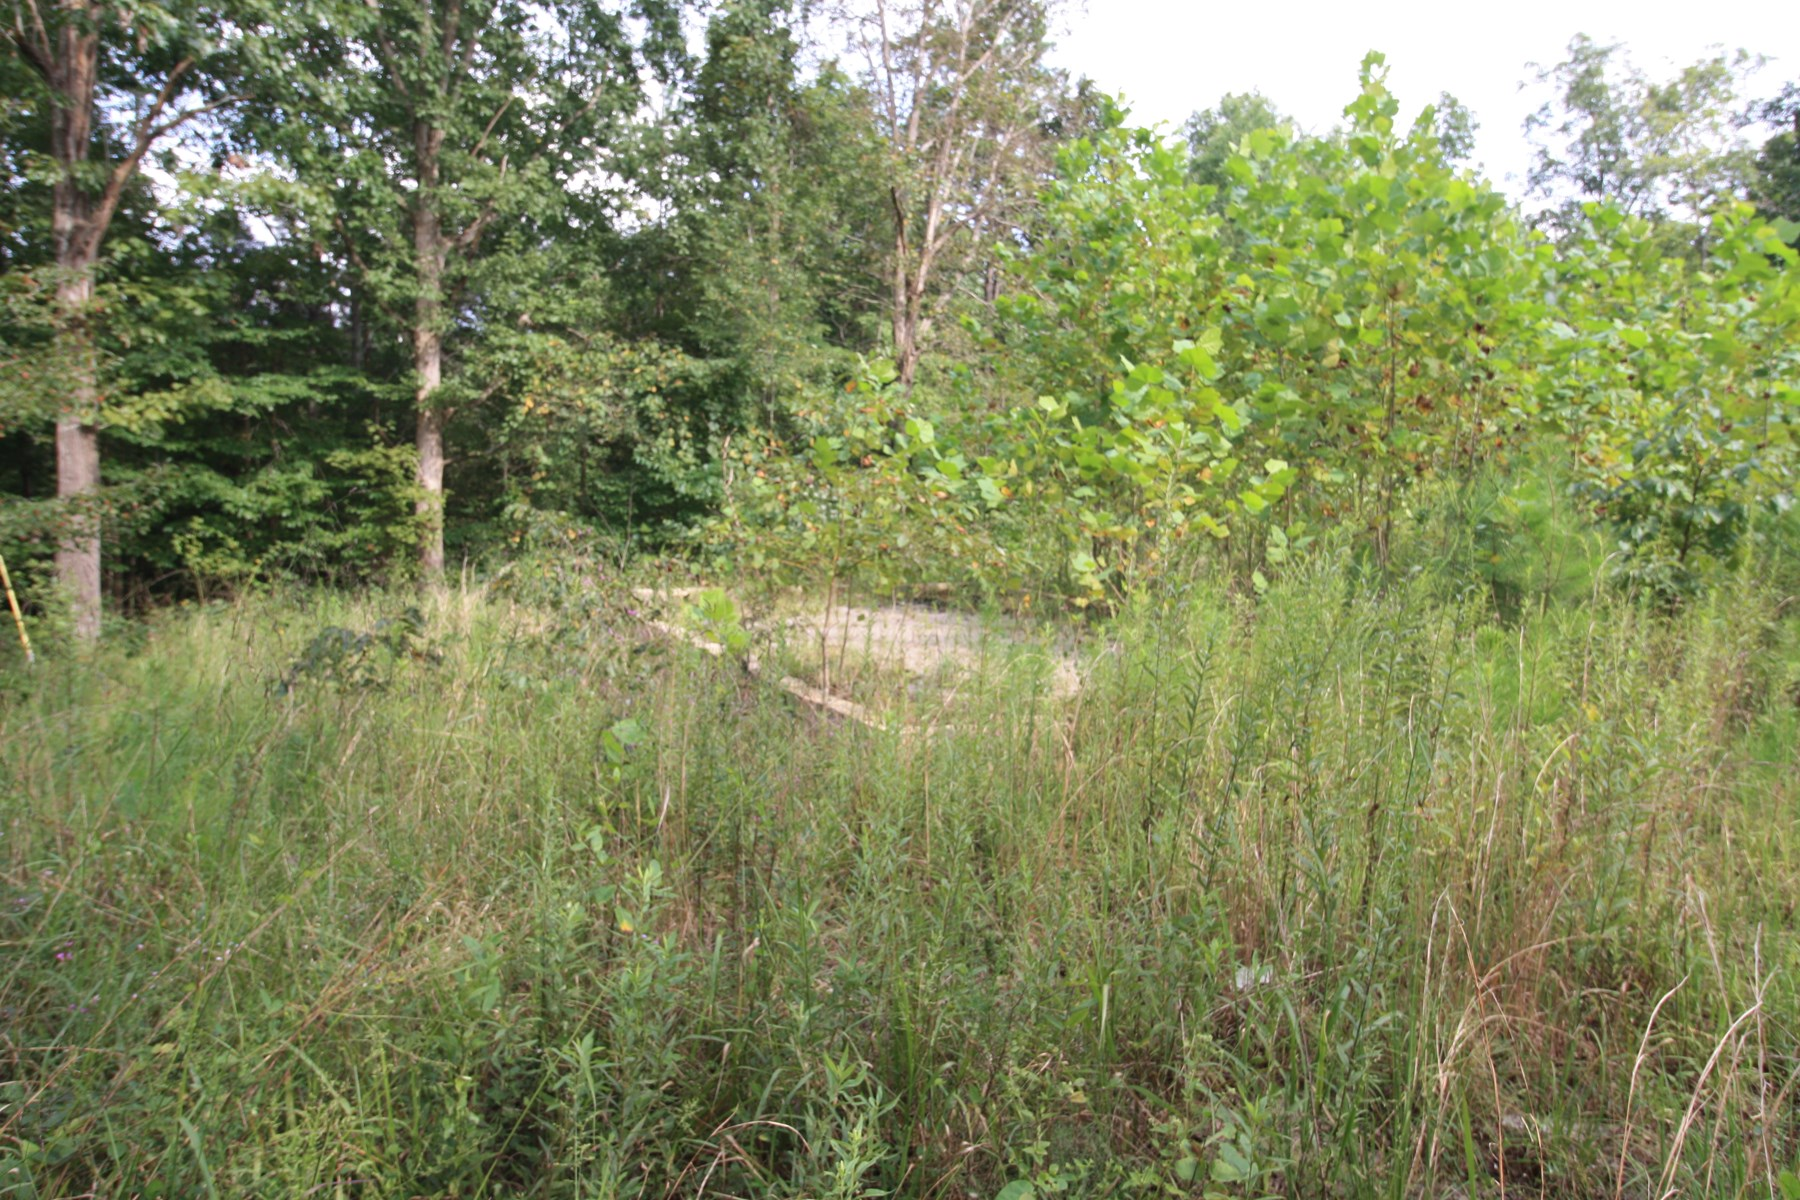 Hunting and Recreation Land For Sale 149 acres